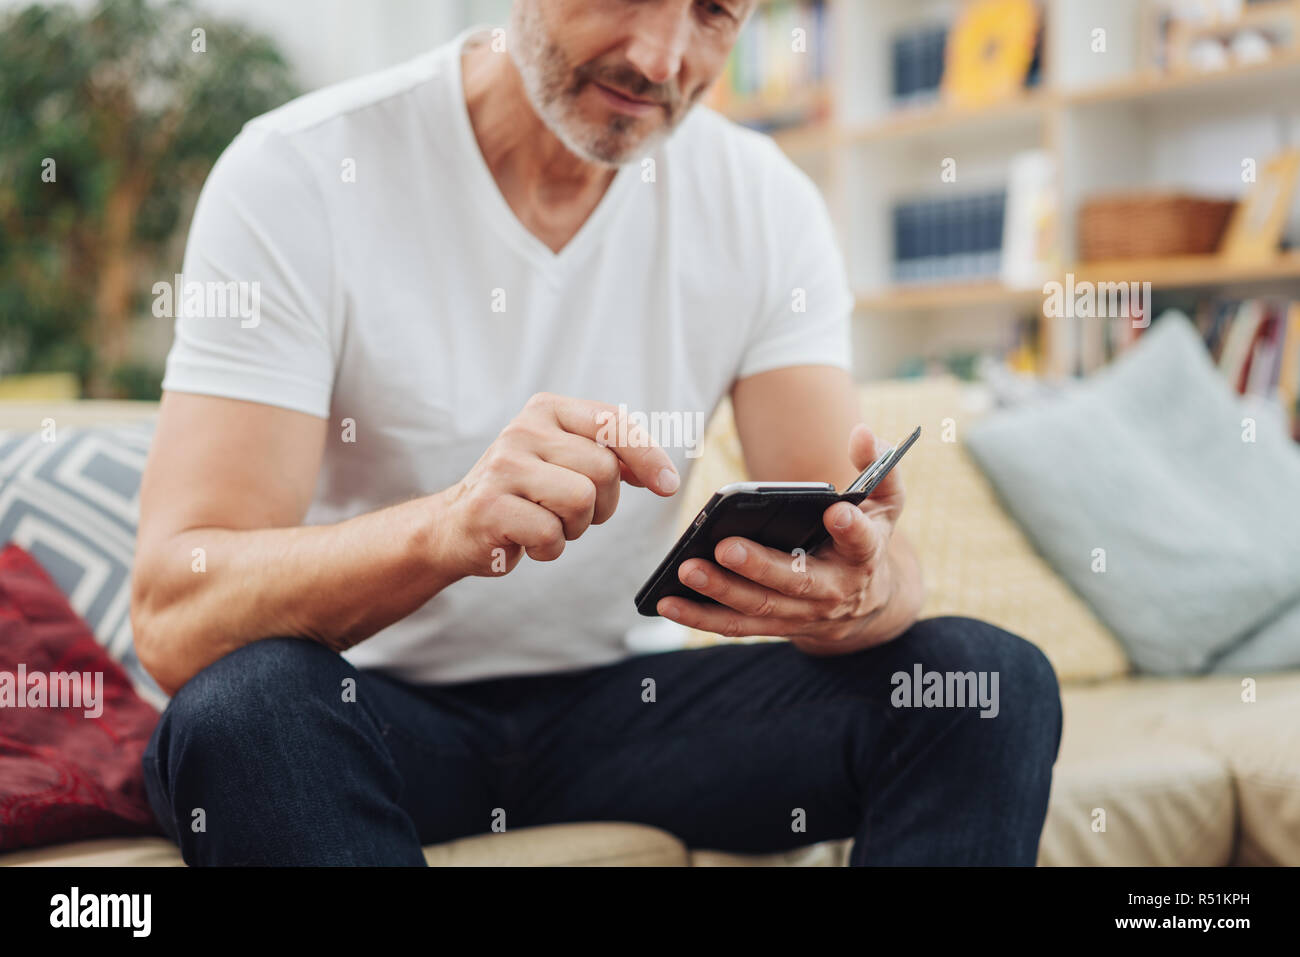 Older man dialing out a call on his mobile phone as he relaxes on a sofa at home in a closeup cropped view - Stock Image